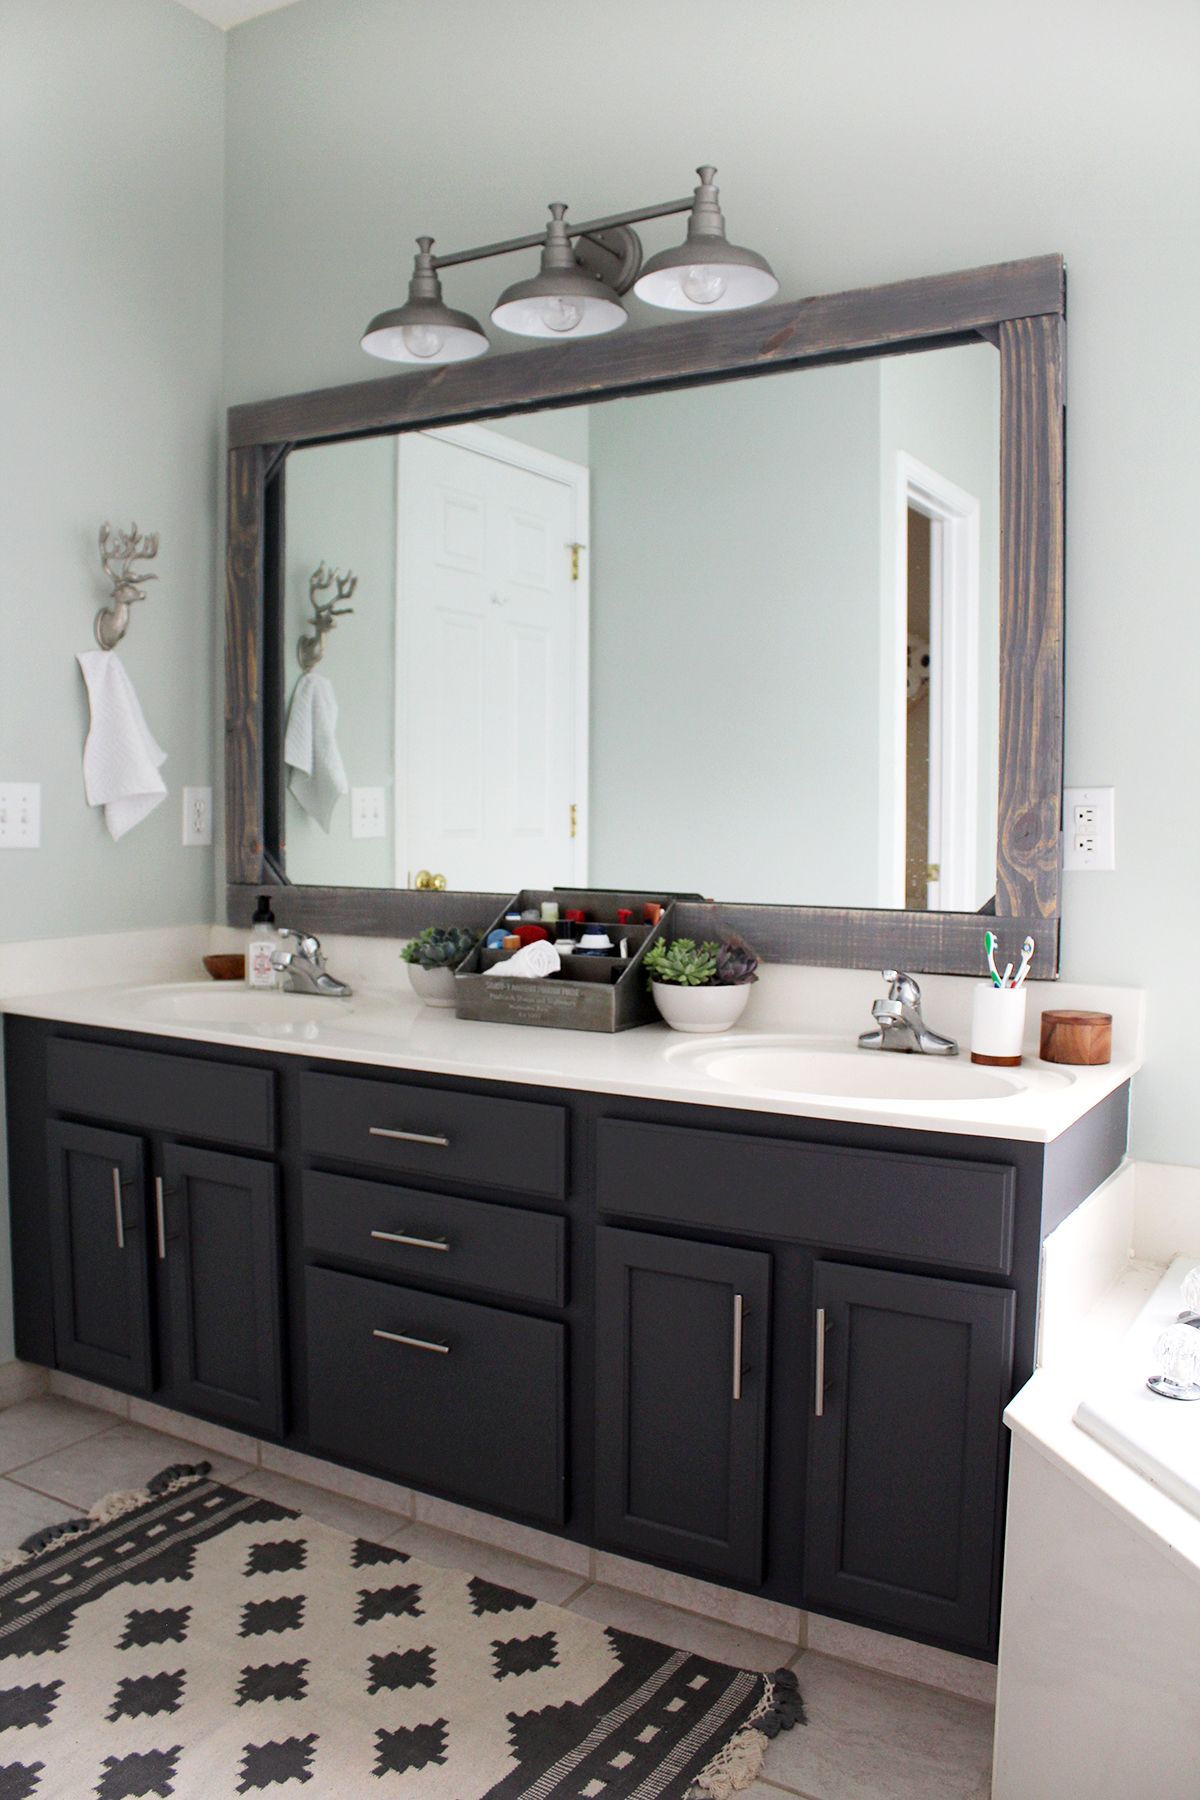 bathroom refresh for $300--painted dark grey cabinets, mirror frame, and a new light fixture #homedesign #DIYdecor #bathroom